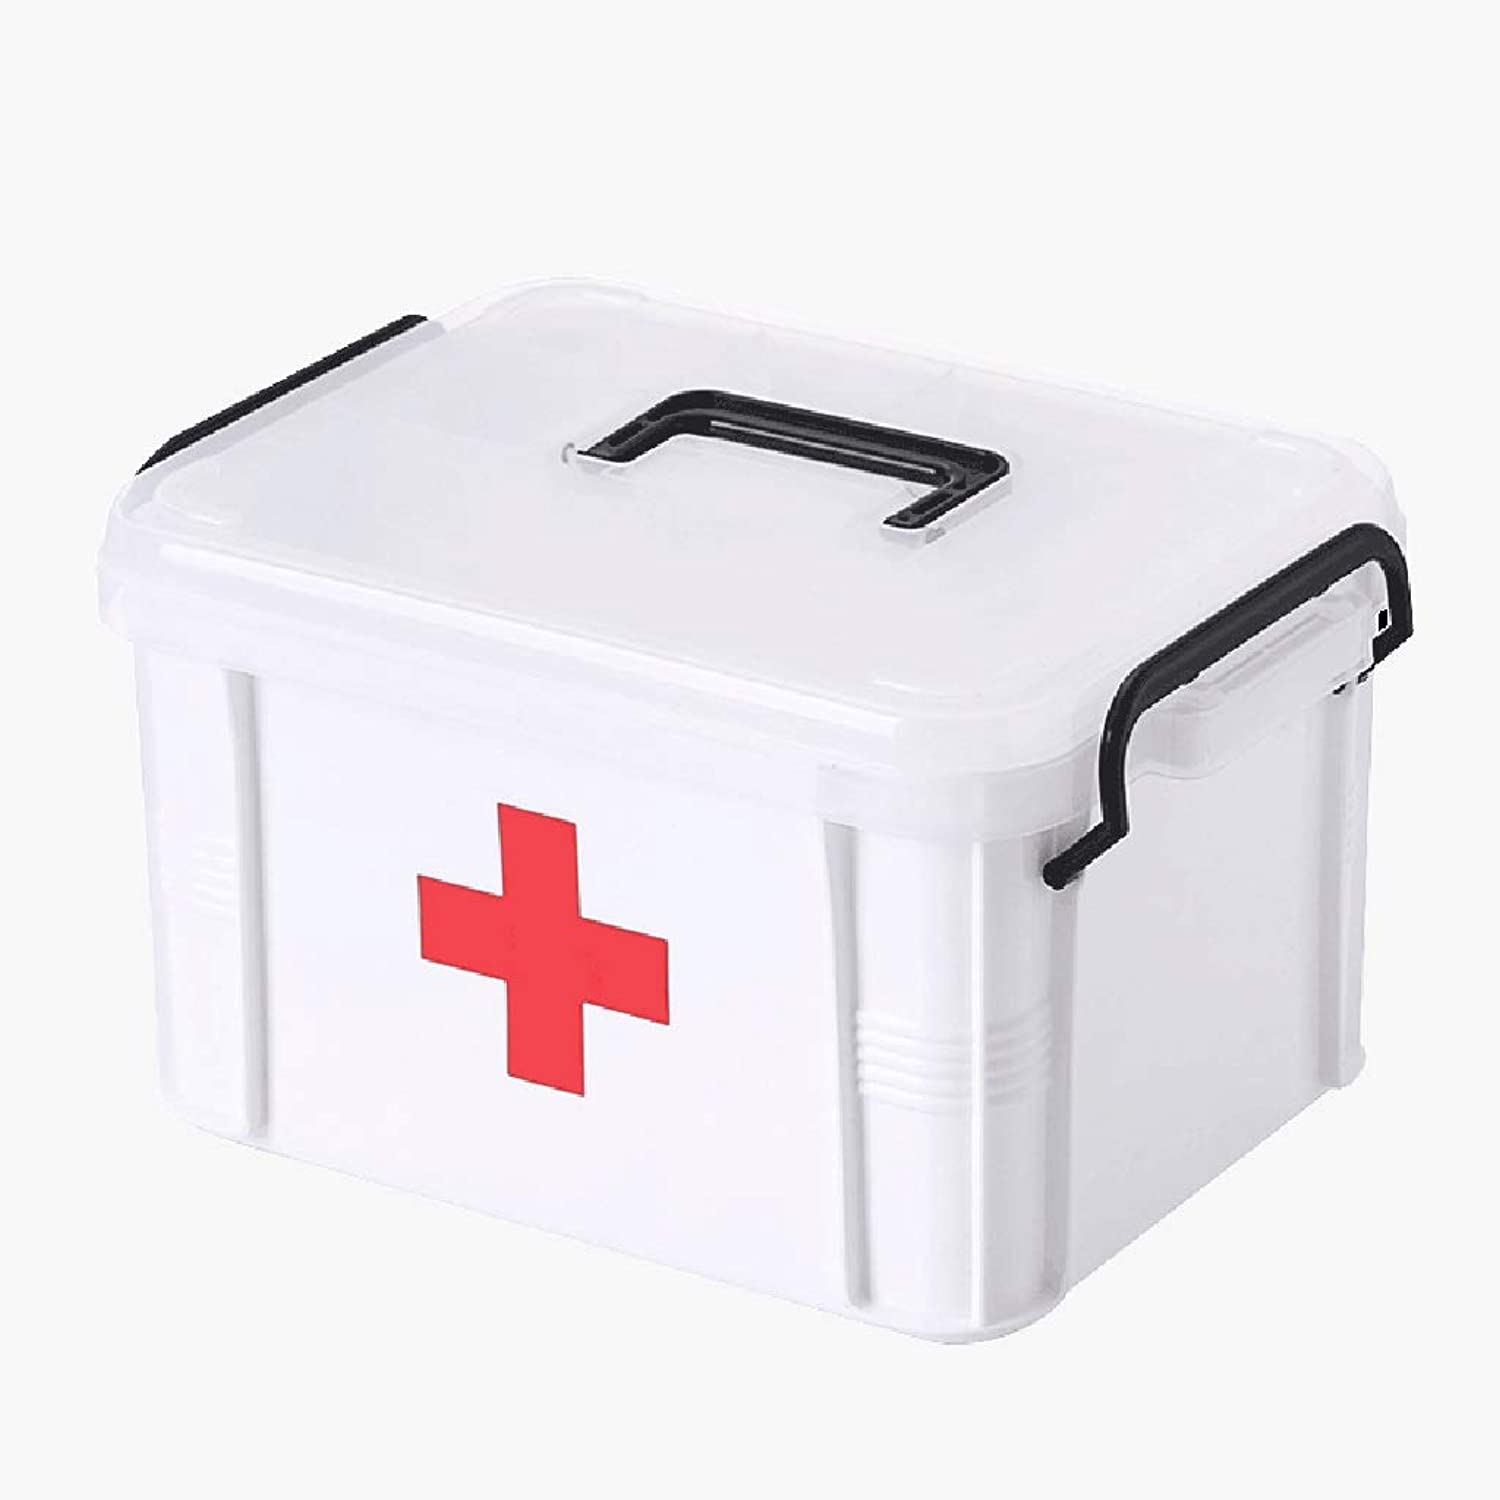 Djyyh First Aid Box Medicine Chest, Double Layer Medical Storage Box, Plastic Medicine Container Box Pill Box (Size   L)